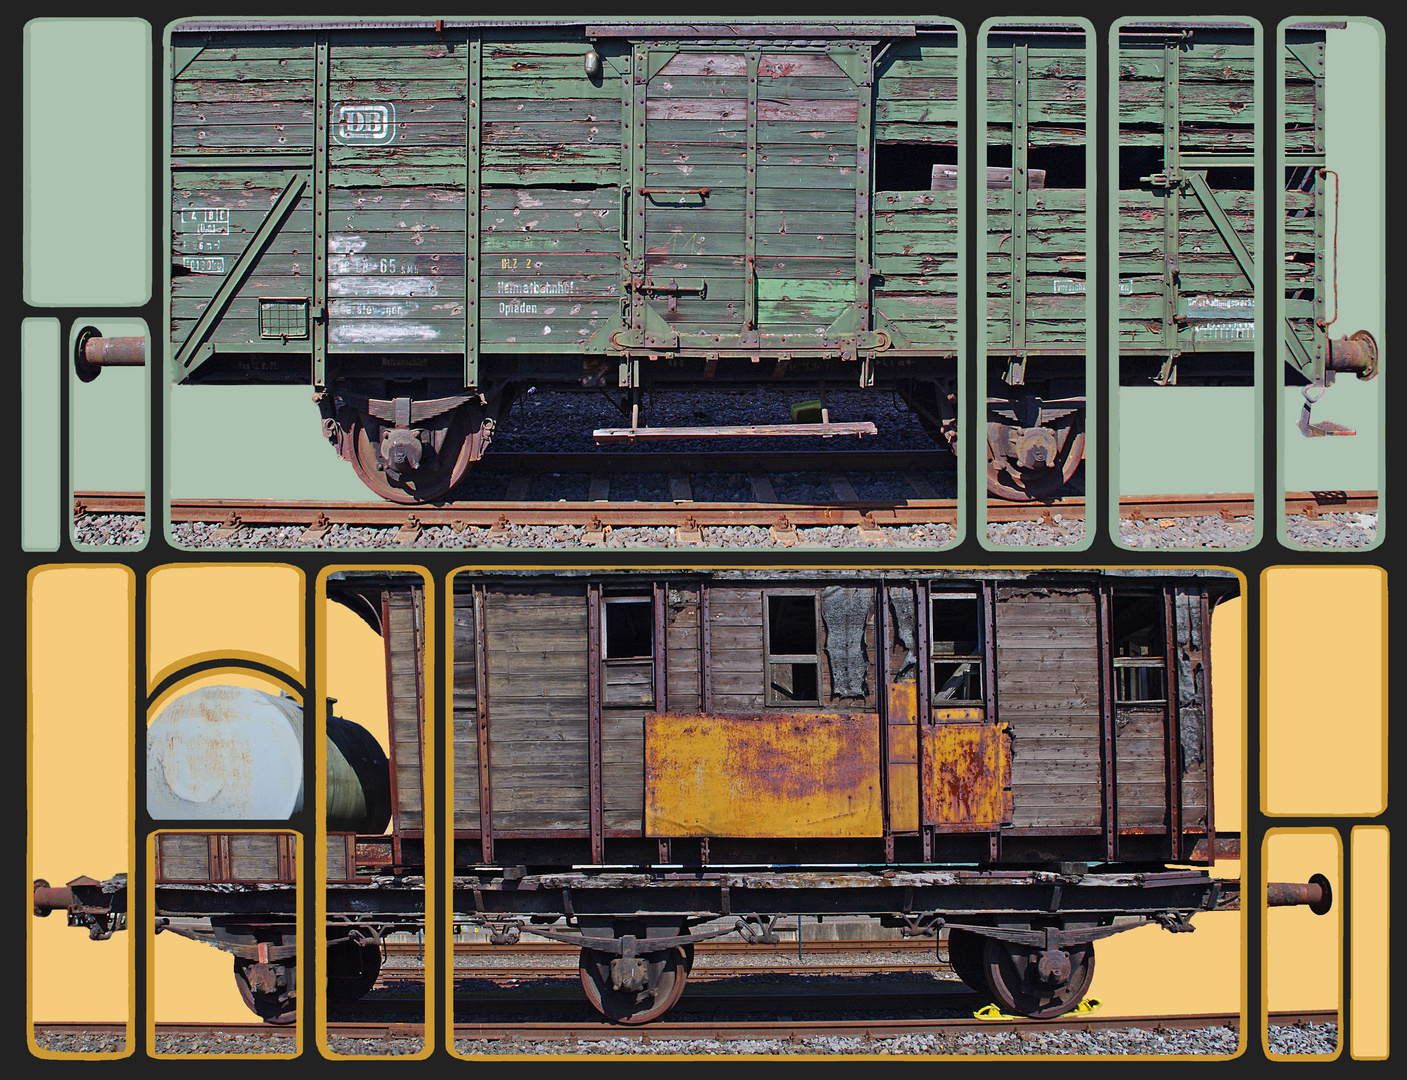 alte Waggons